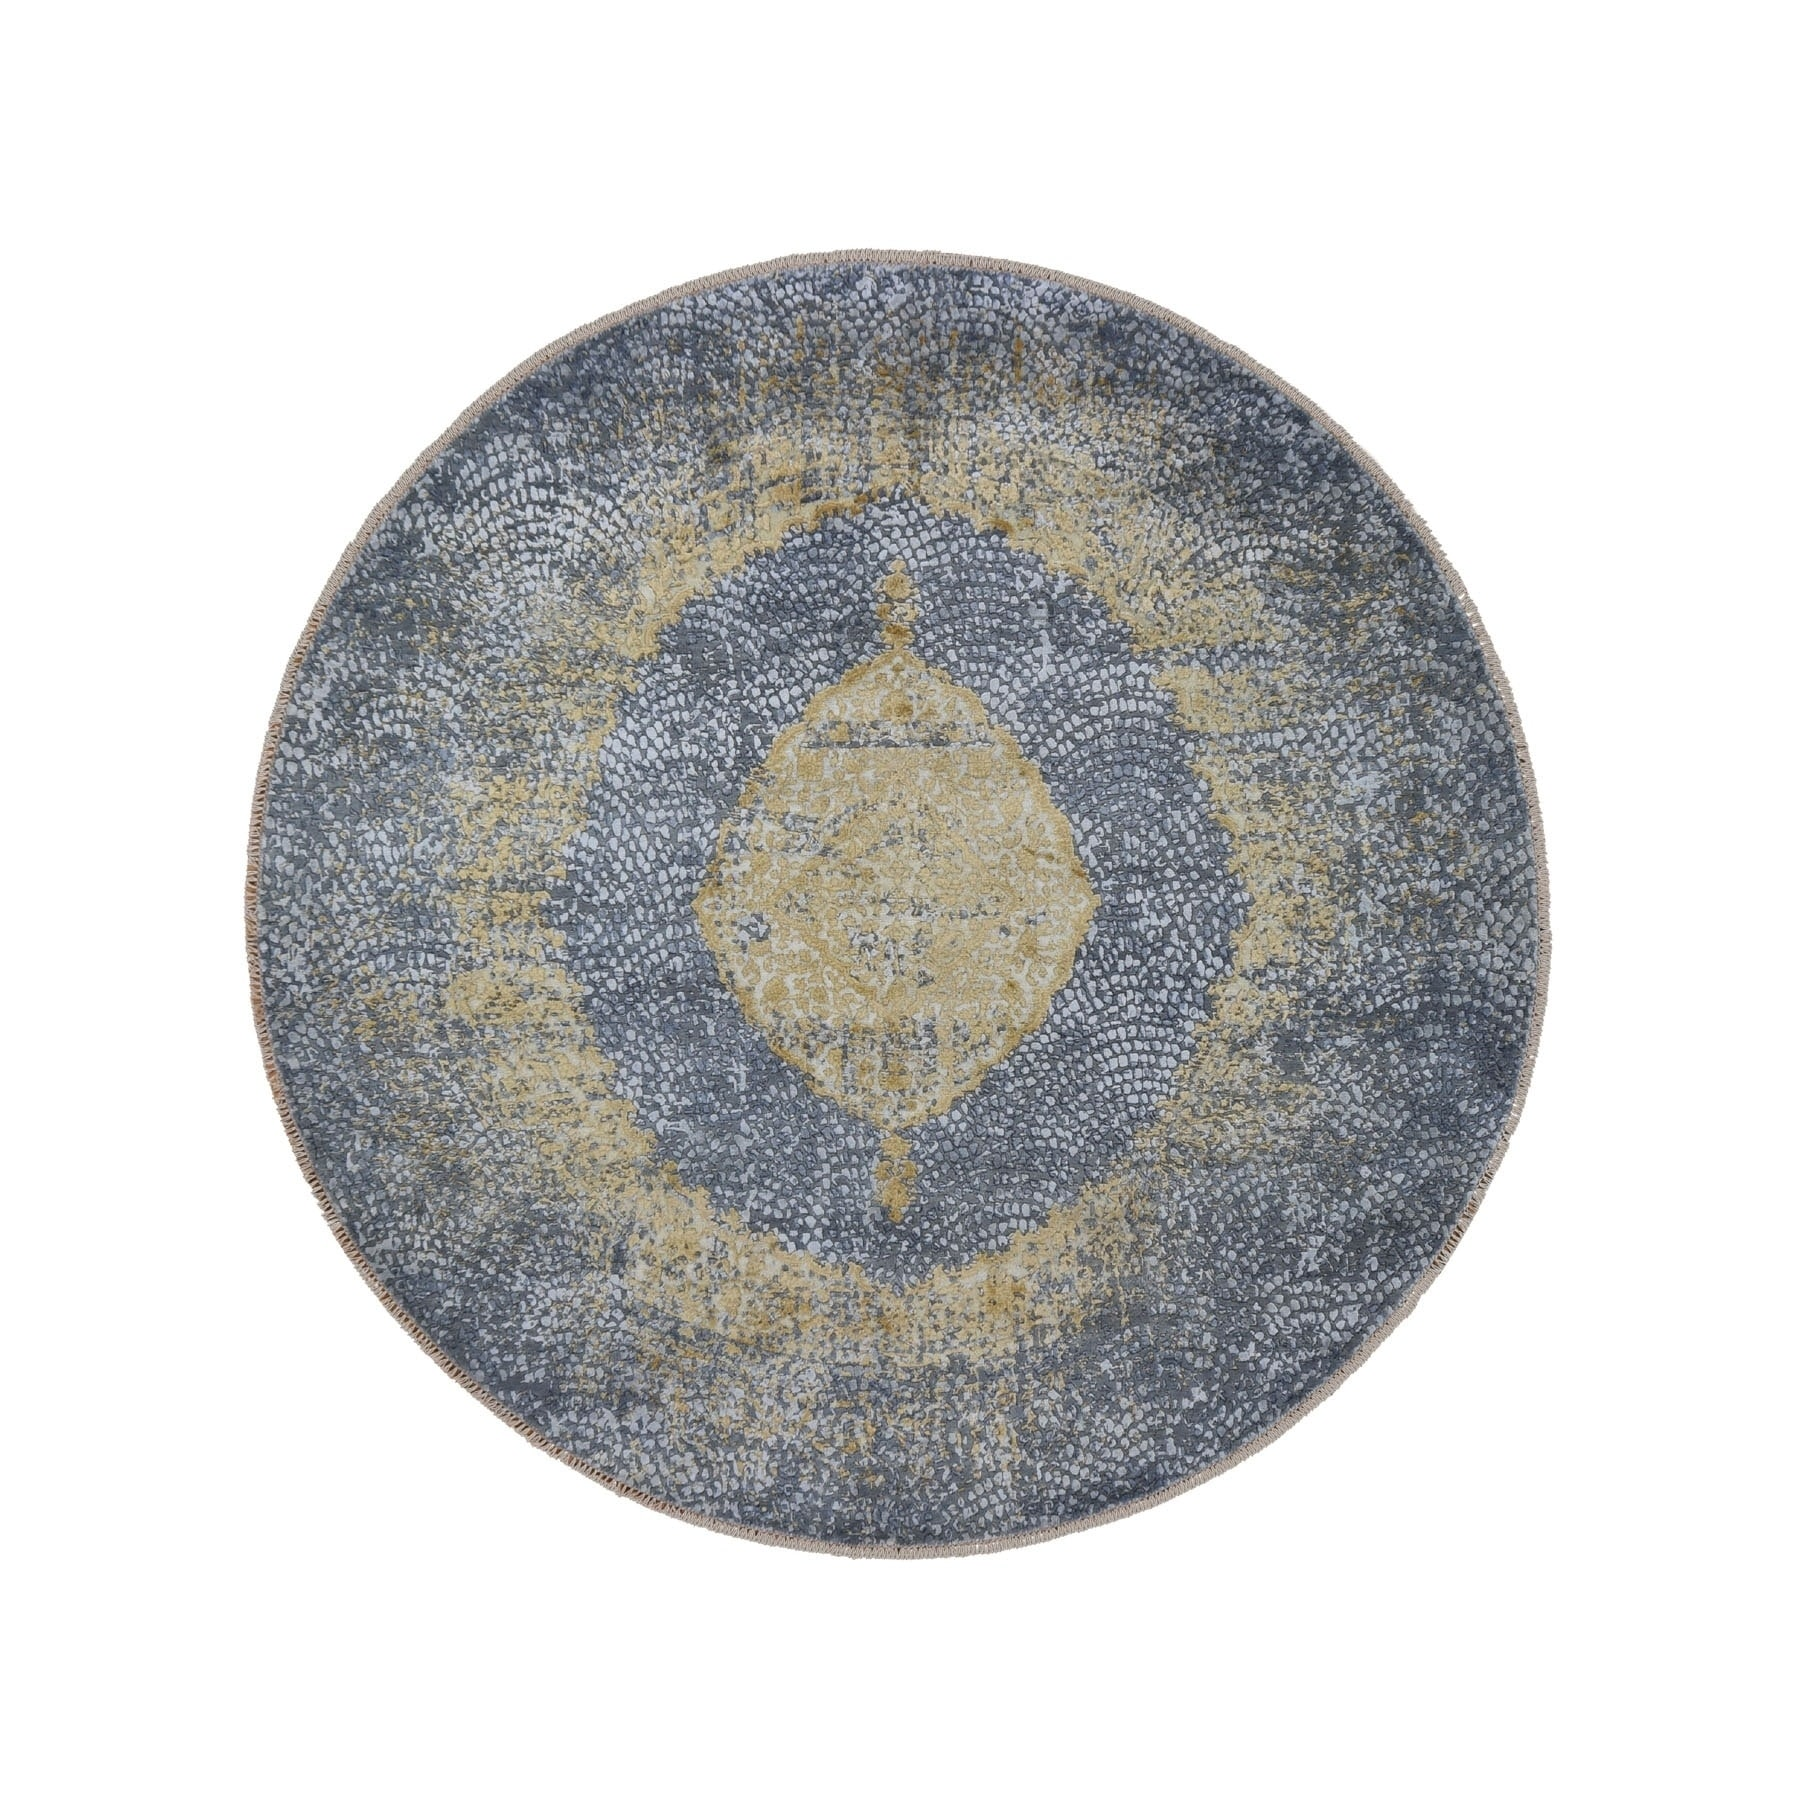 Shahbanu Rugs Round Gray Gold Persian Design Wool And Pure Silk Hand Knotted Oriental Rug 7 10 X 7 10 7 10 X 7 10